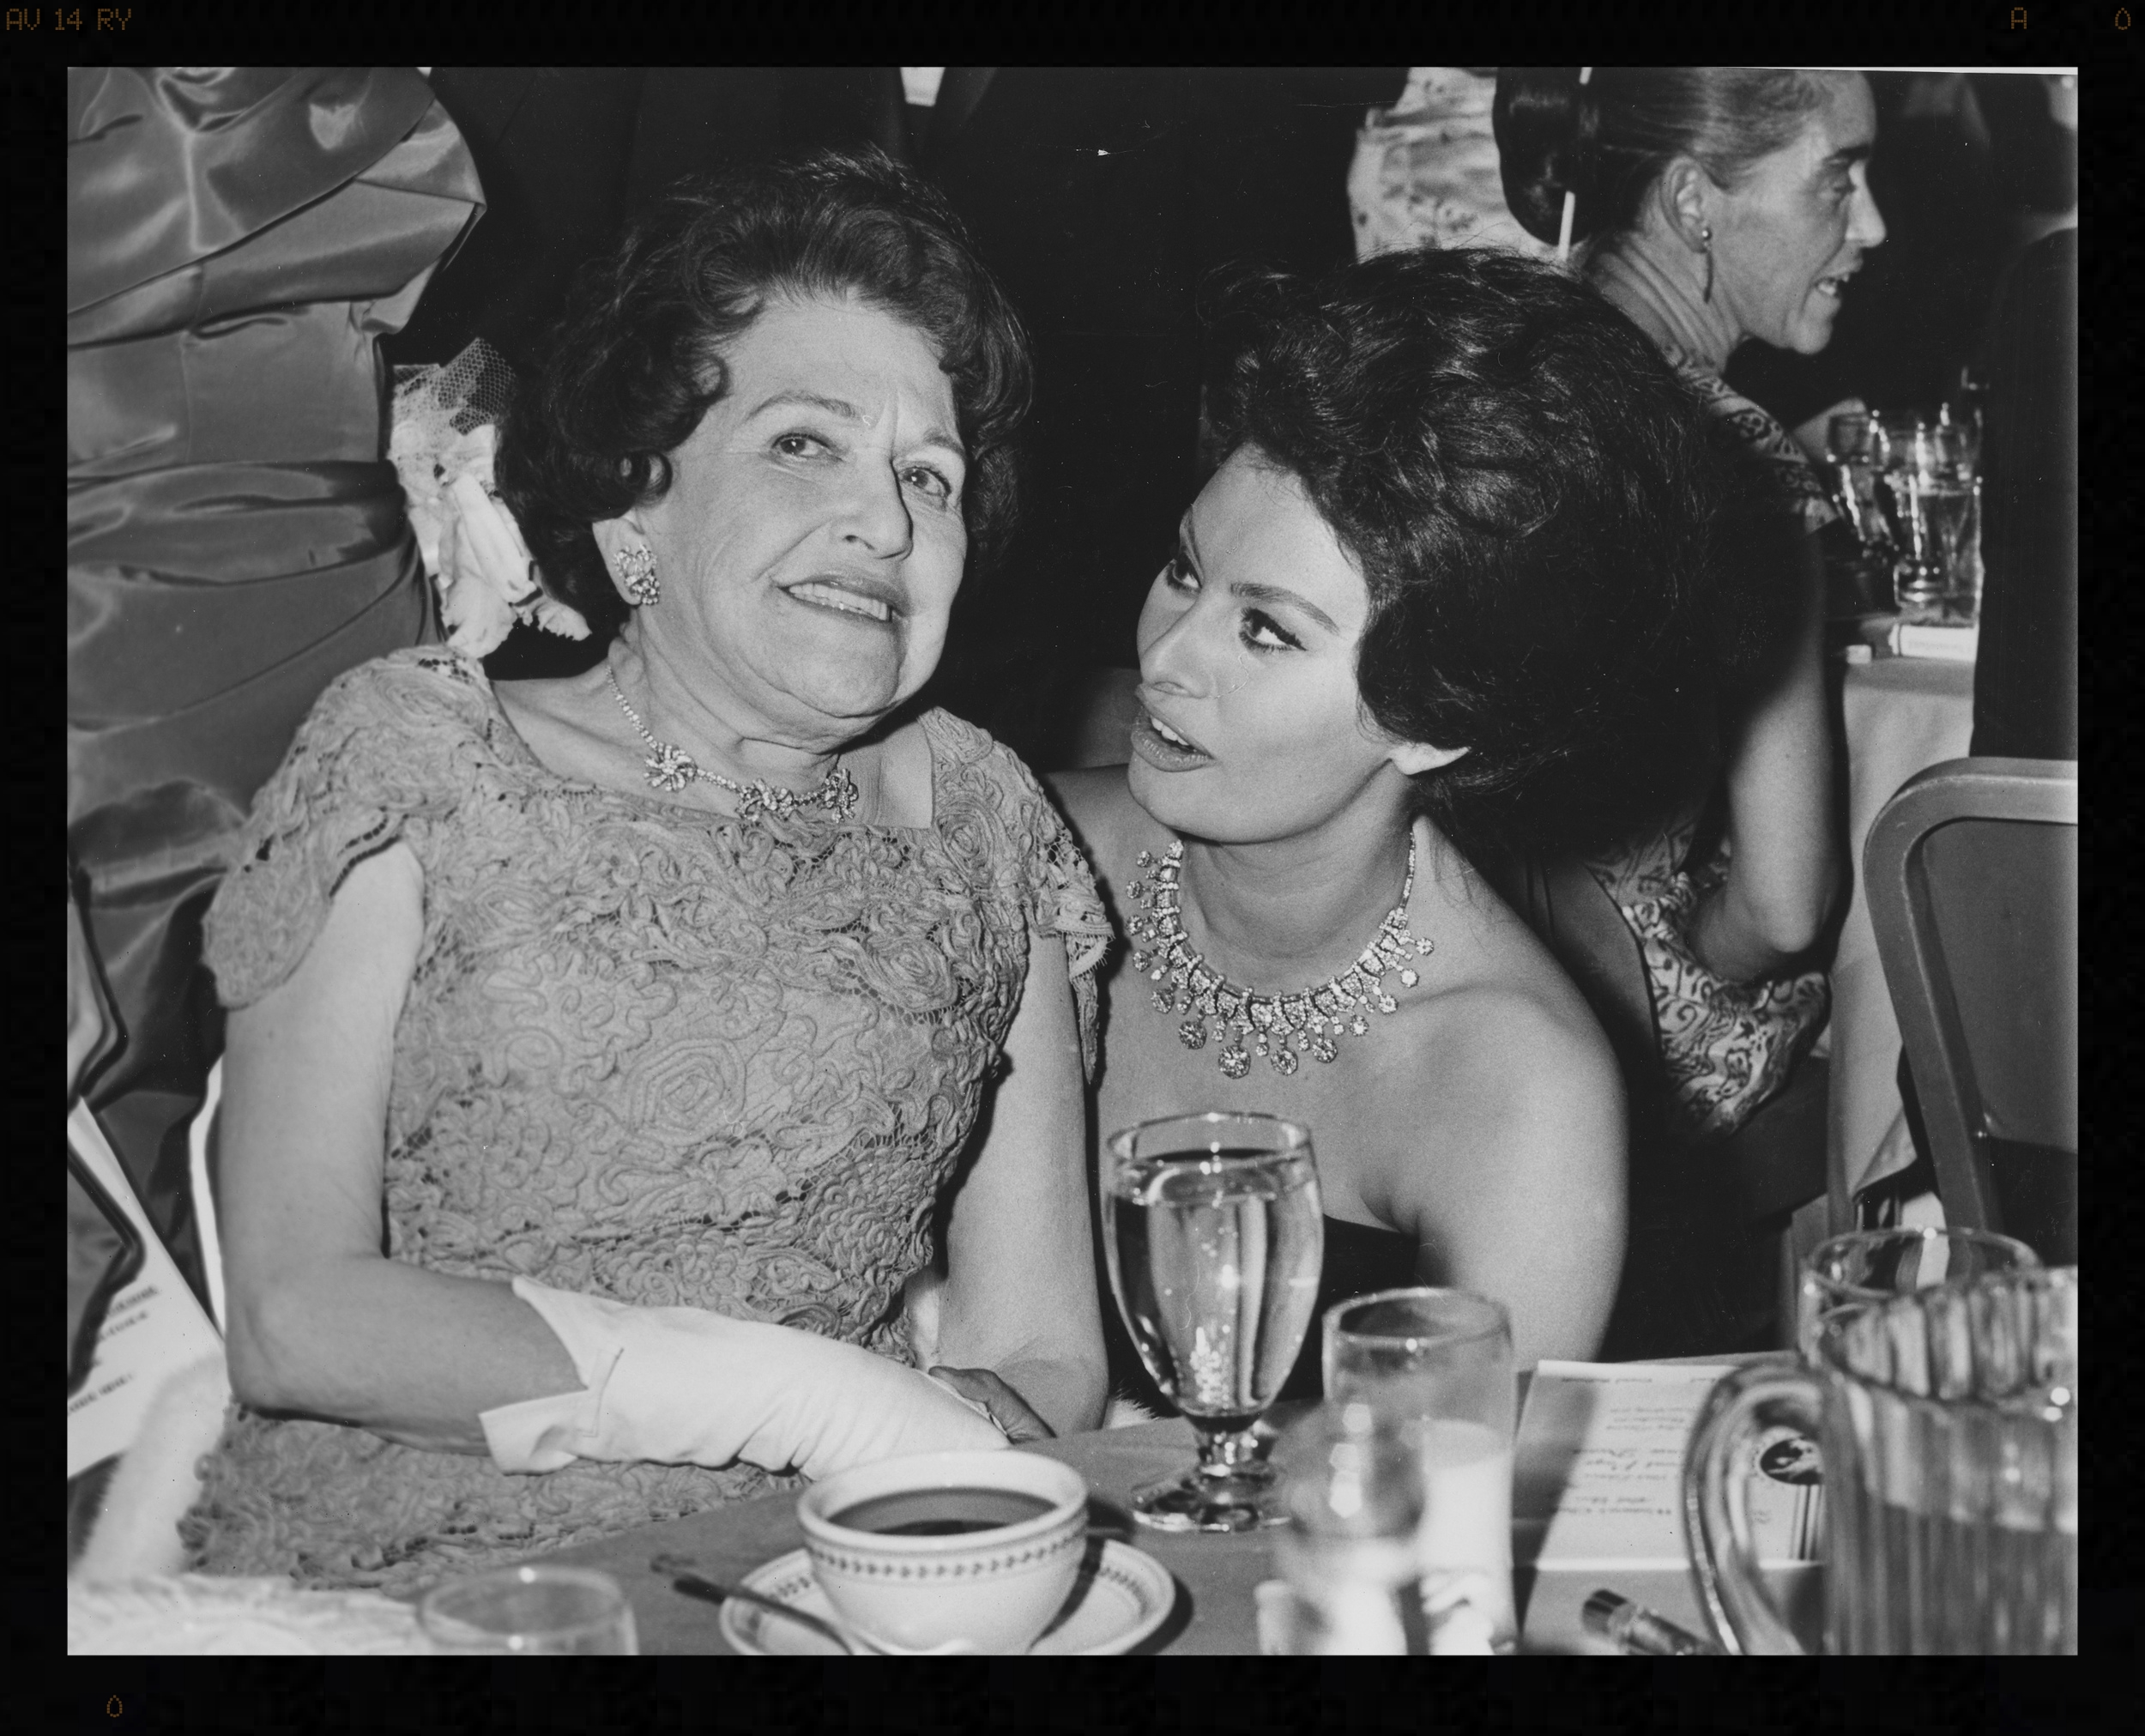 Gossip columnist and radio show host Louella Parsons and actress Sophia Loren at a Newswomen's Club Front Page Ball. Parsons was president of the New York Newspaper Women's Club in 1925.